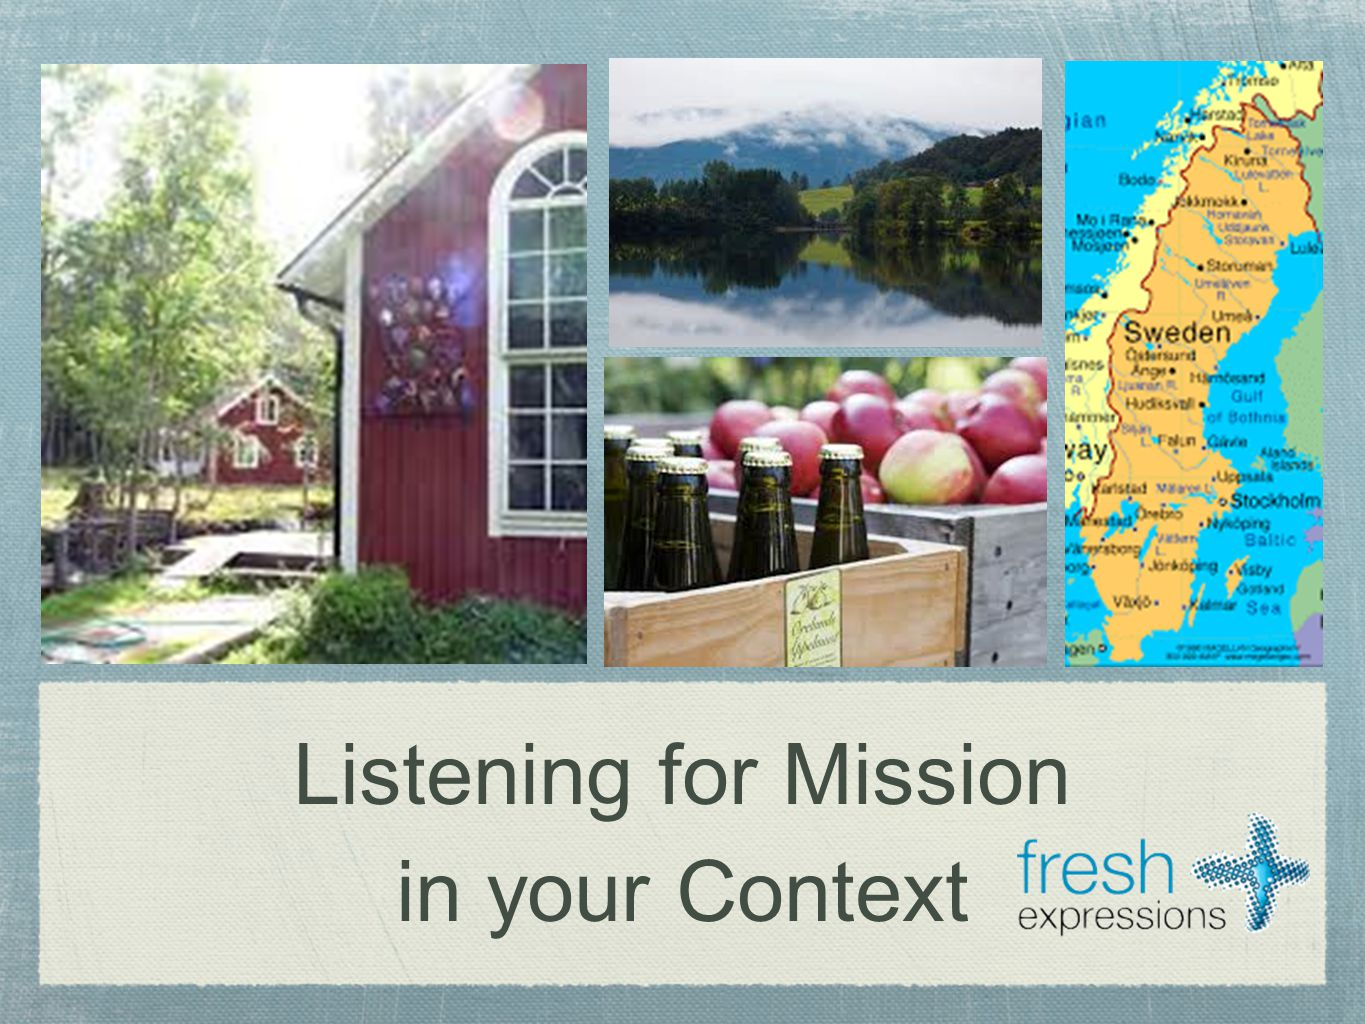 Listening for Mission in your Context